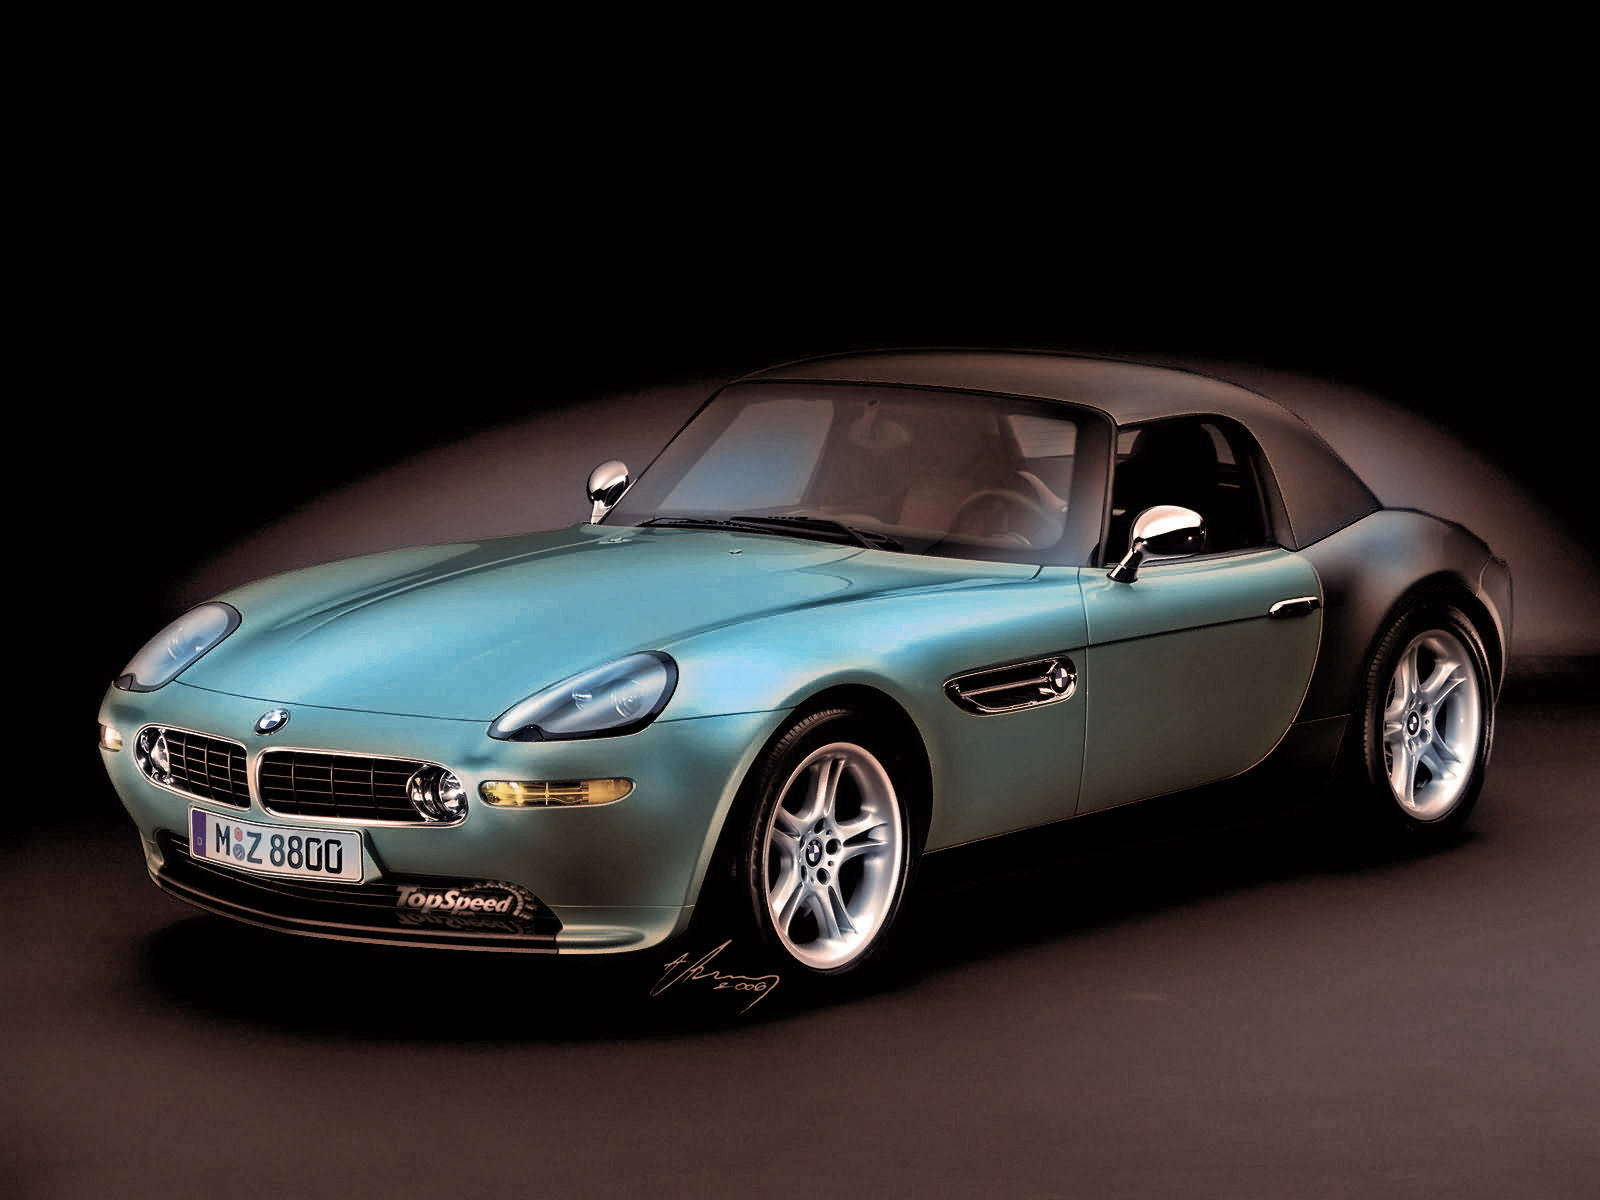 2000 2003 Bmw Z8 Picture 97478 Car Review Top Speed